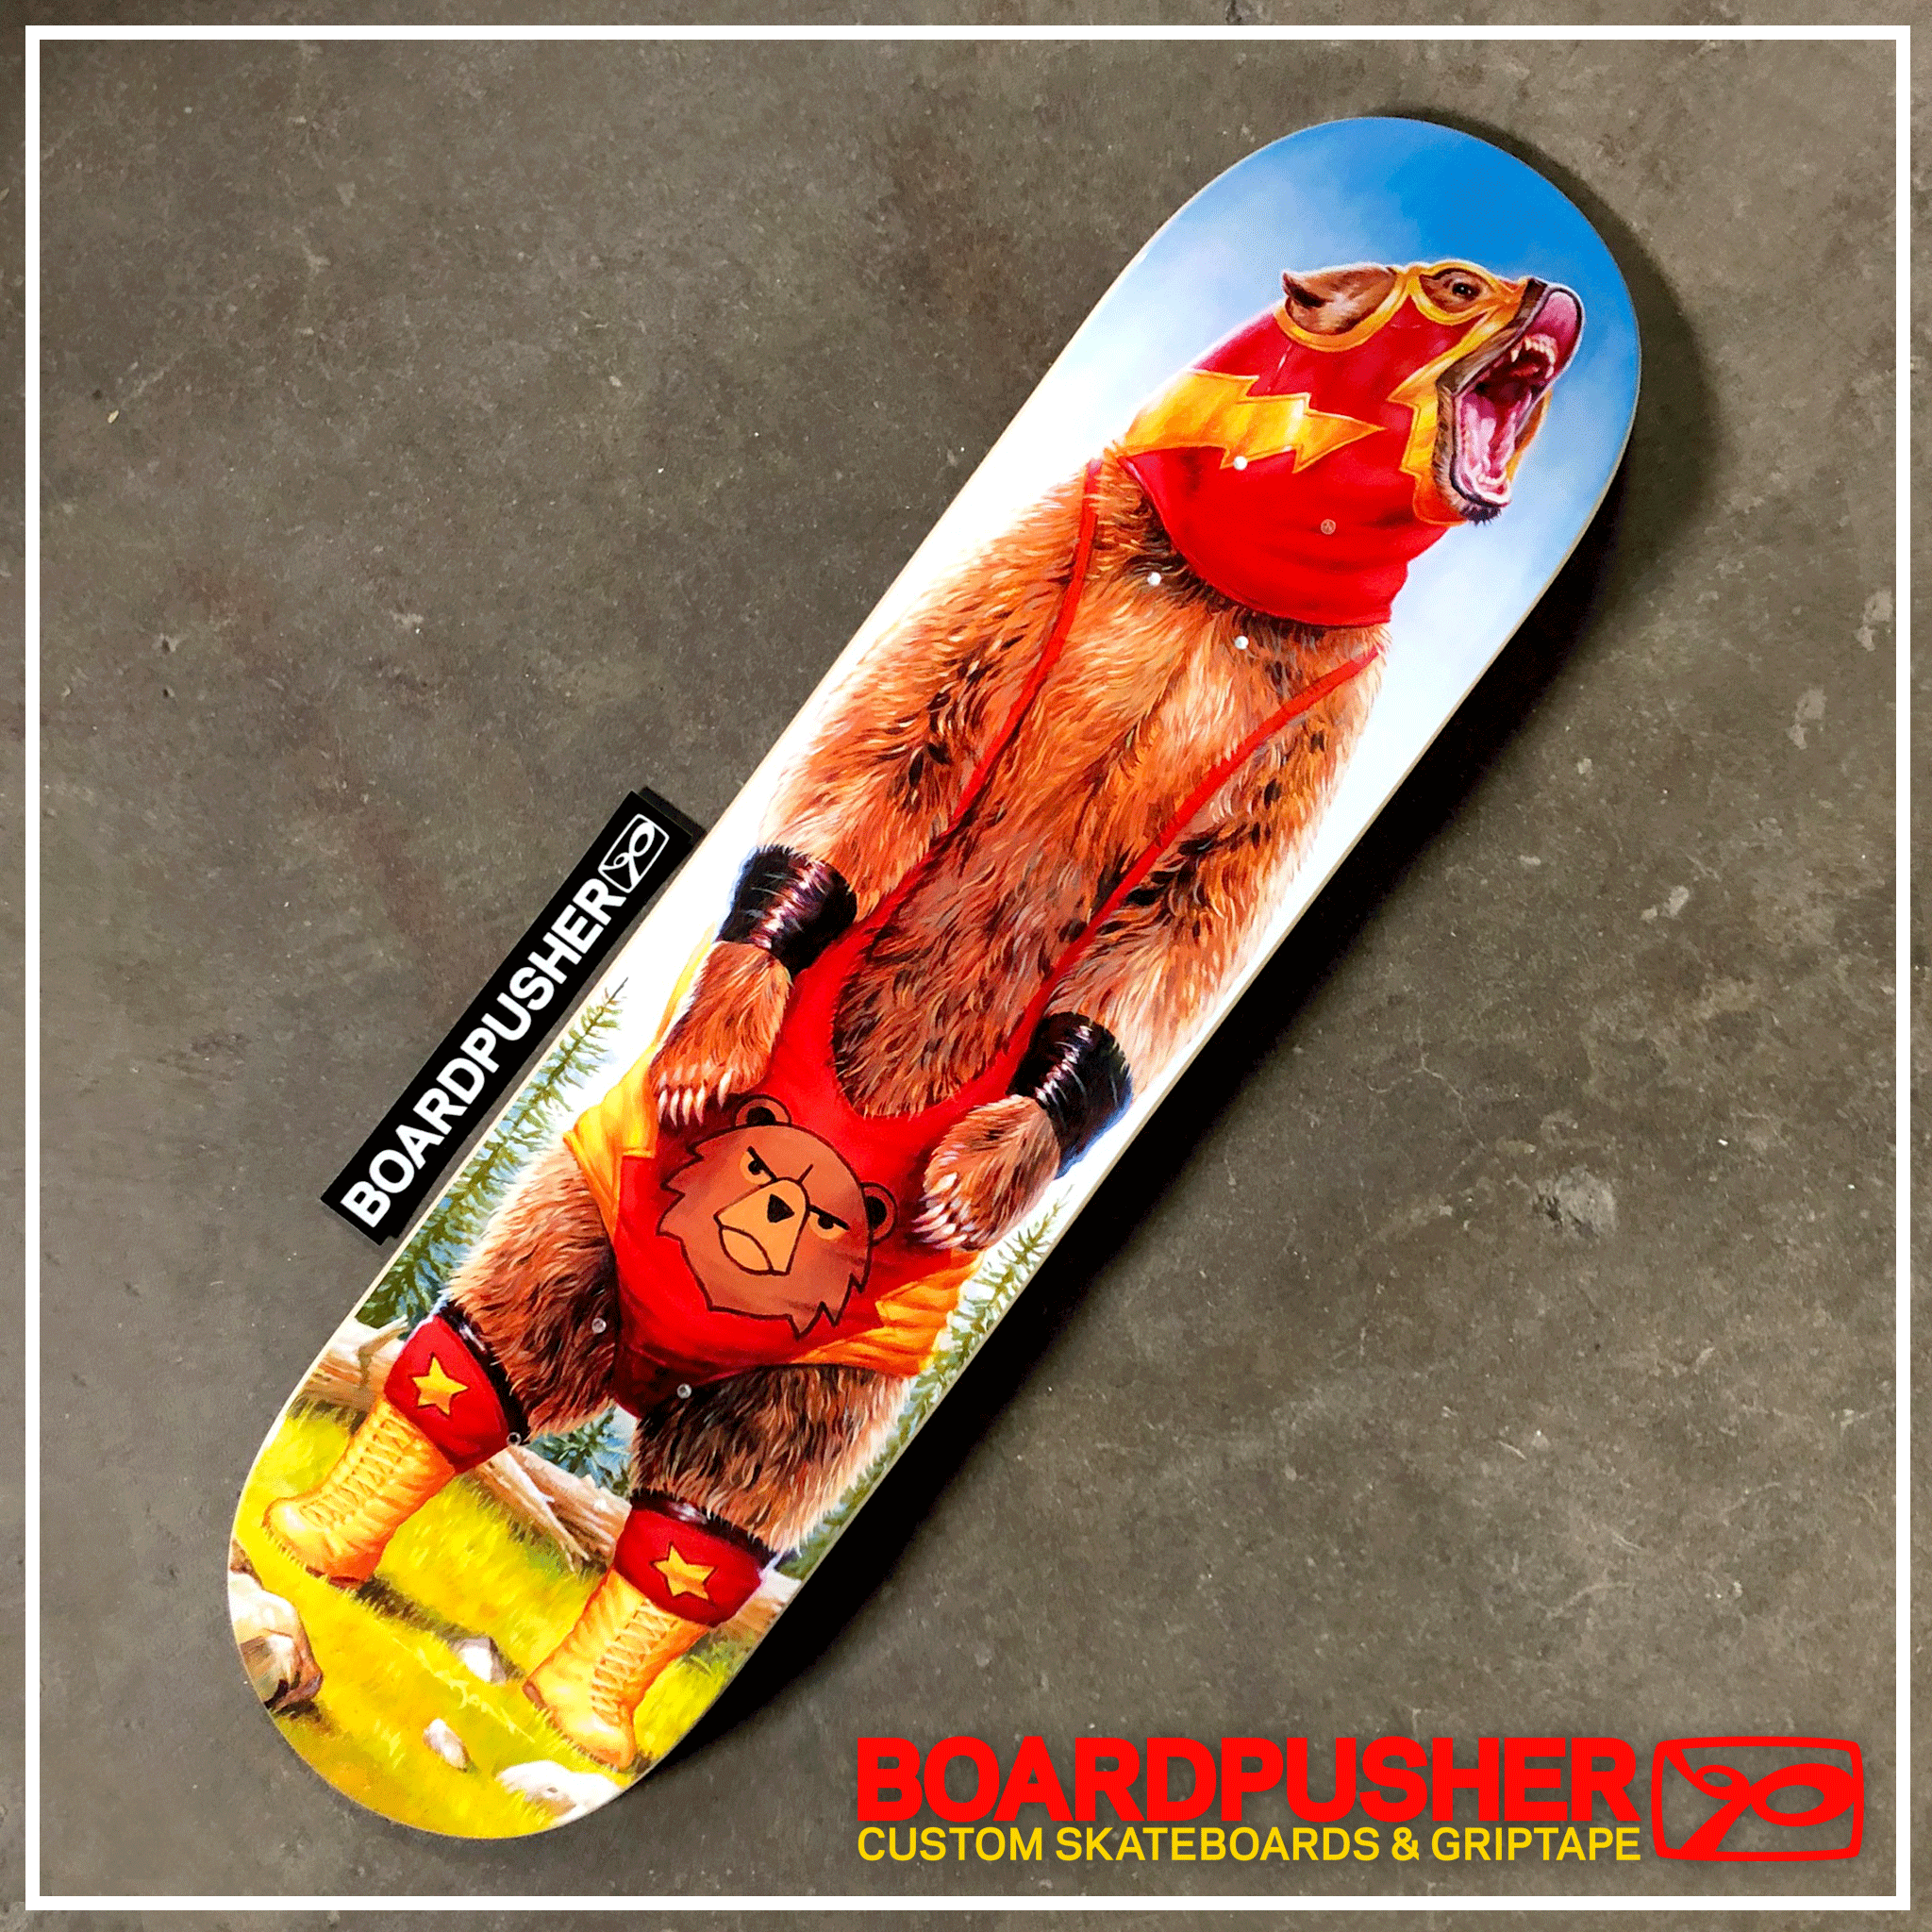 Featured Deck Of The Week Lucha Bear By Jason Edmiston For Vicarious Visions Tony Hawk Pro Skater Tony Hawk Pro Skater Pro Skaters Jason Edmiston